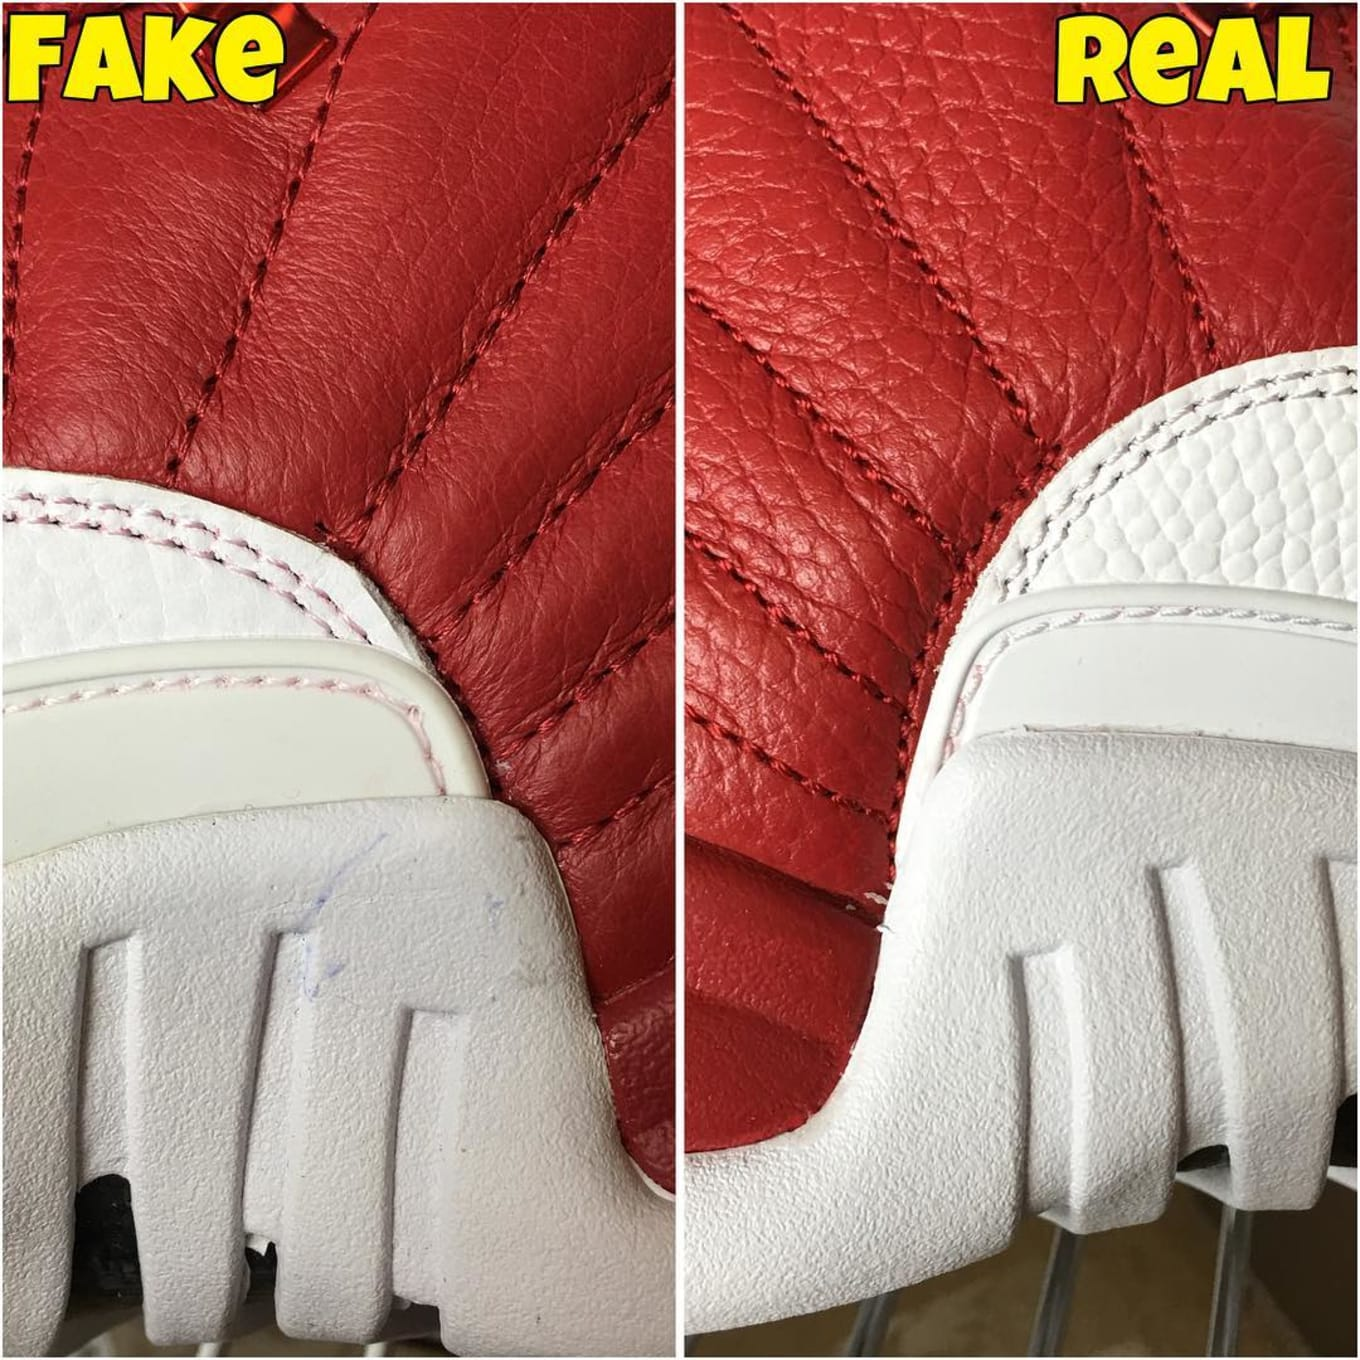 low cost d0e37 aa432 Air Jordan XII 12 Gym Red Real Fake Legit Check | Sole Collector